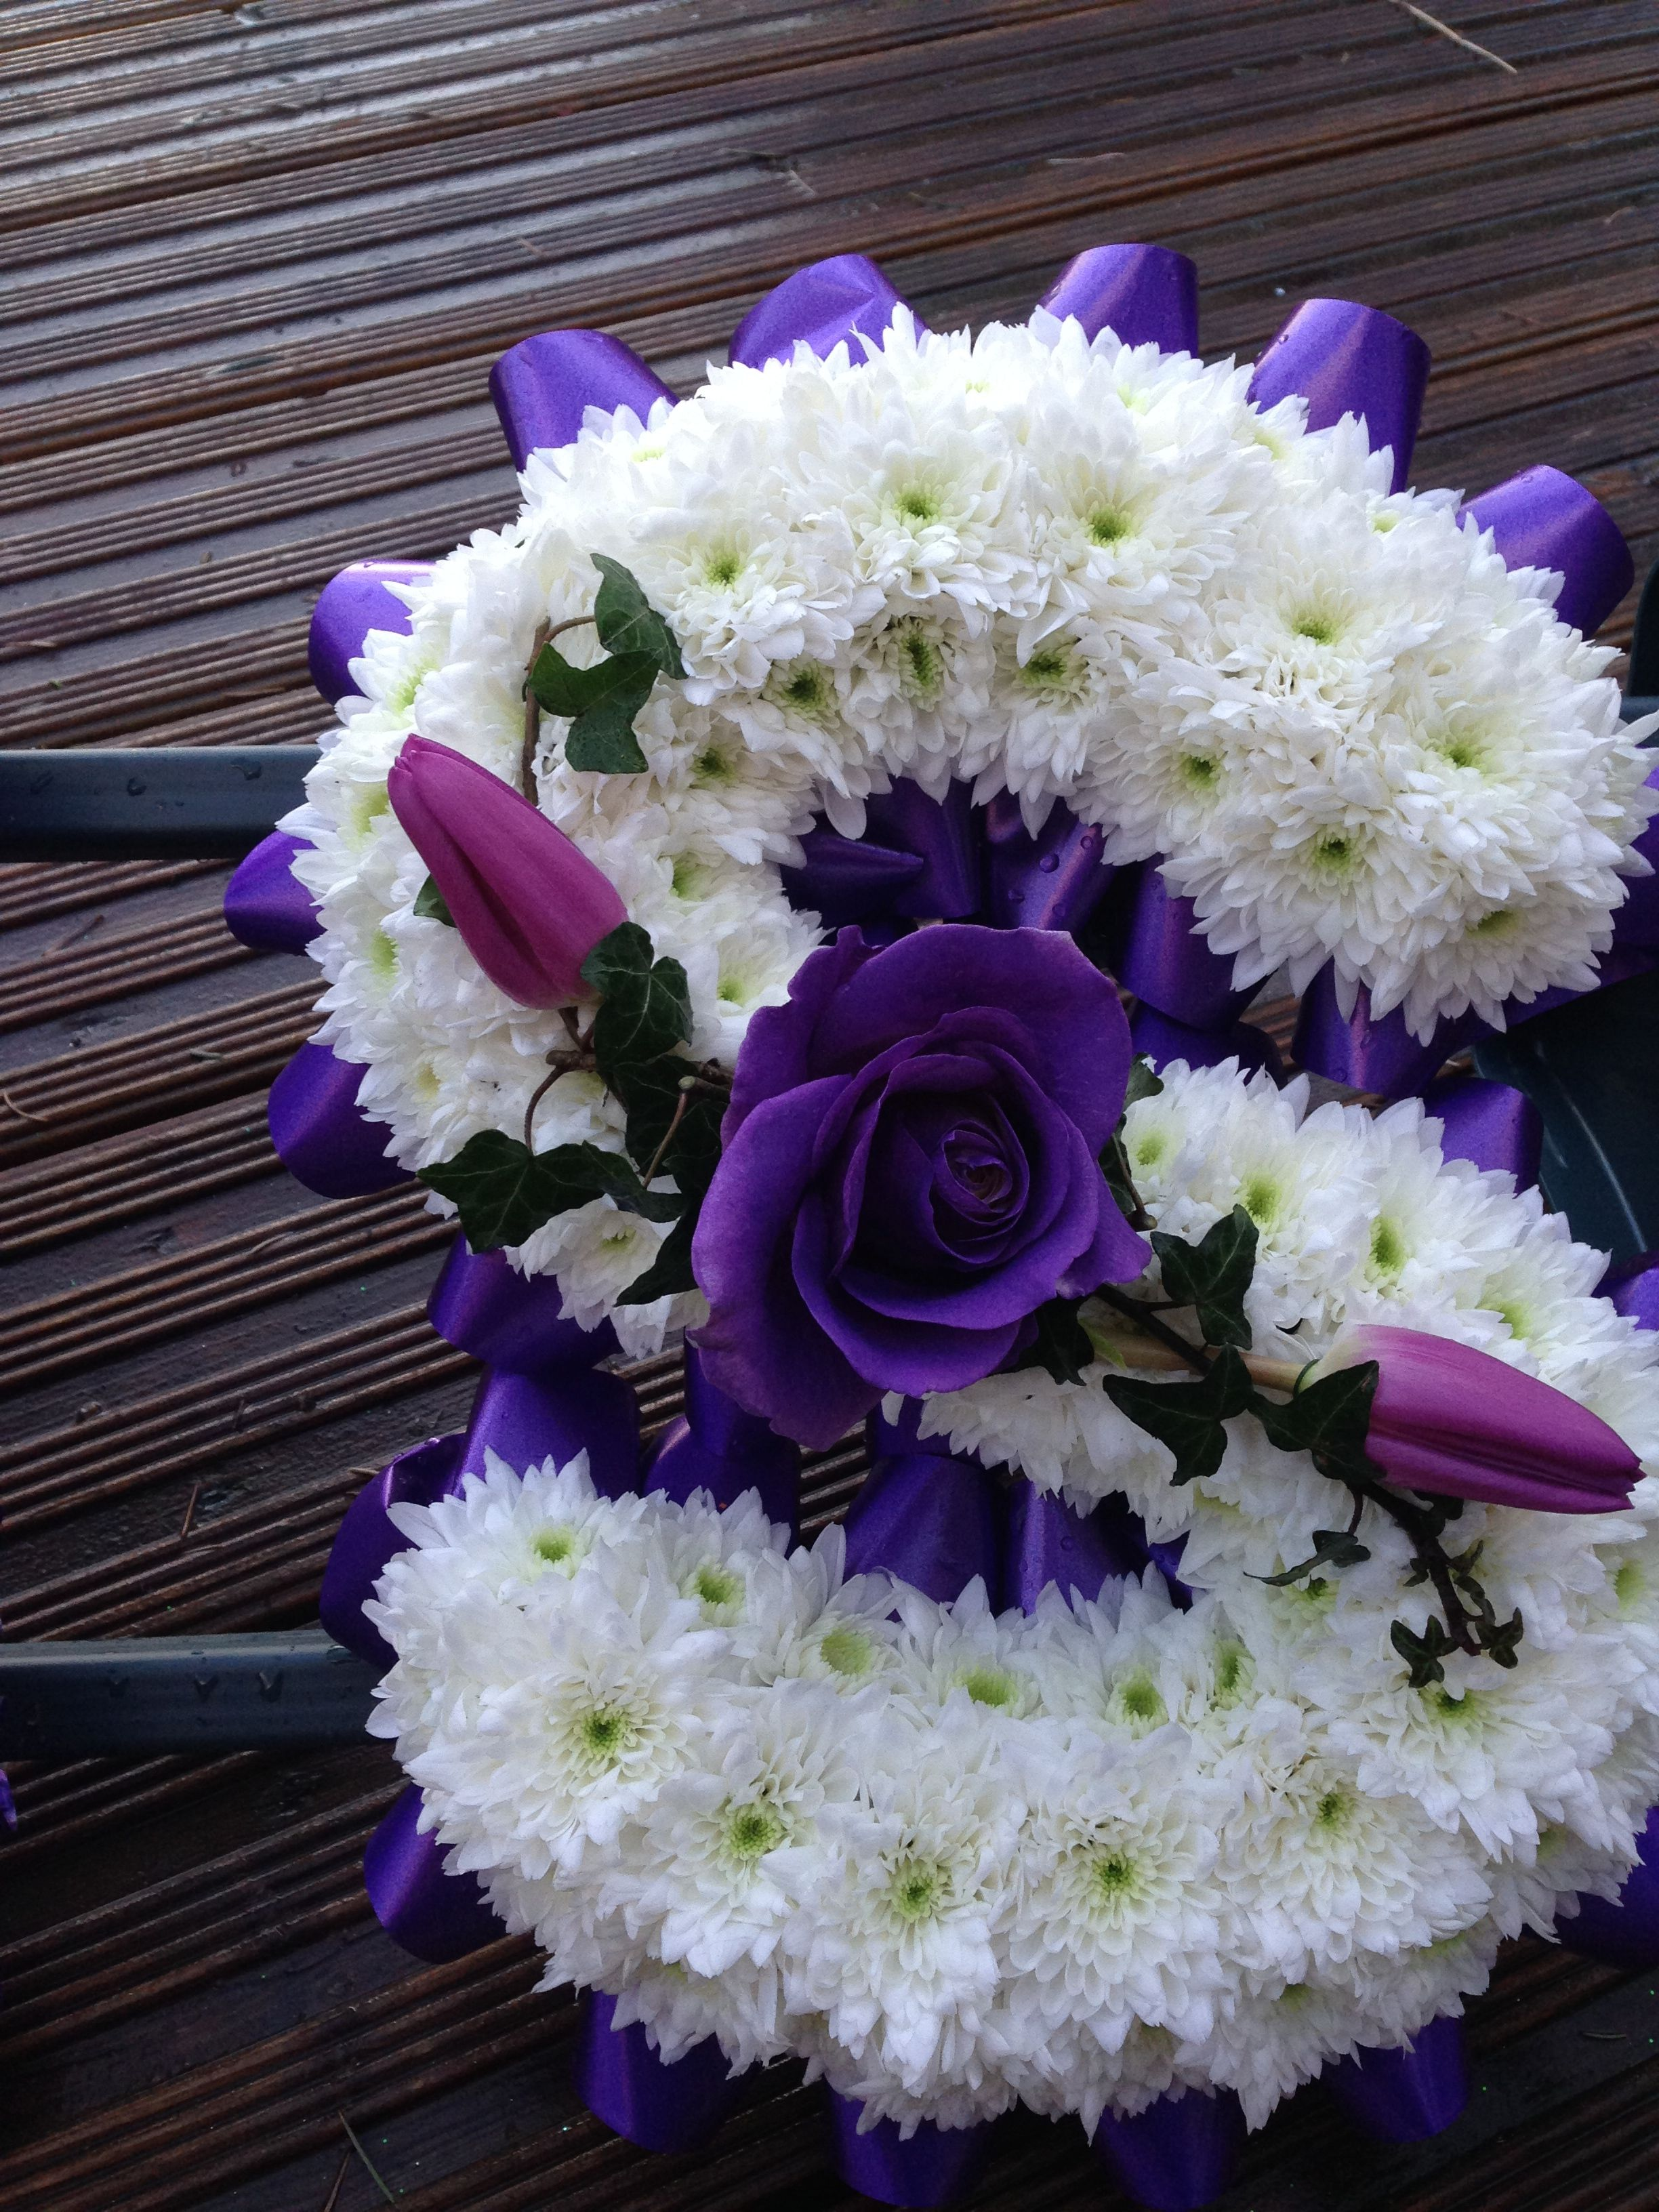 Funeral flowers deep purple and white funeral flower letter deep purple and white funeral flower letter tributes thefloralartstudio izmirmasajfo